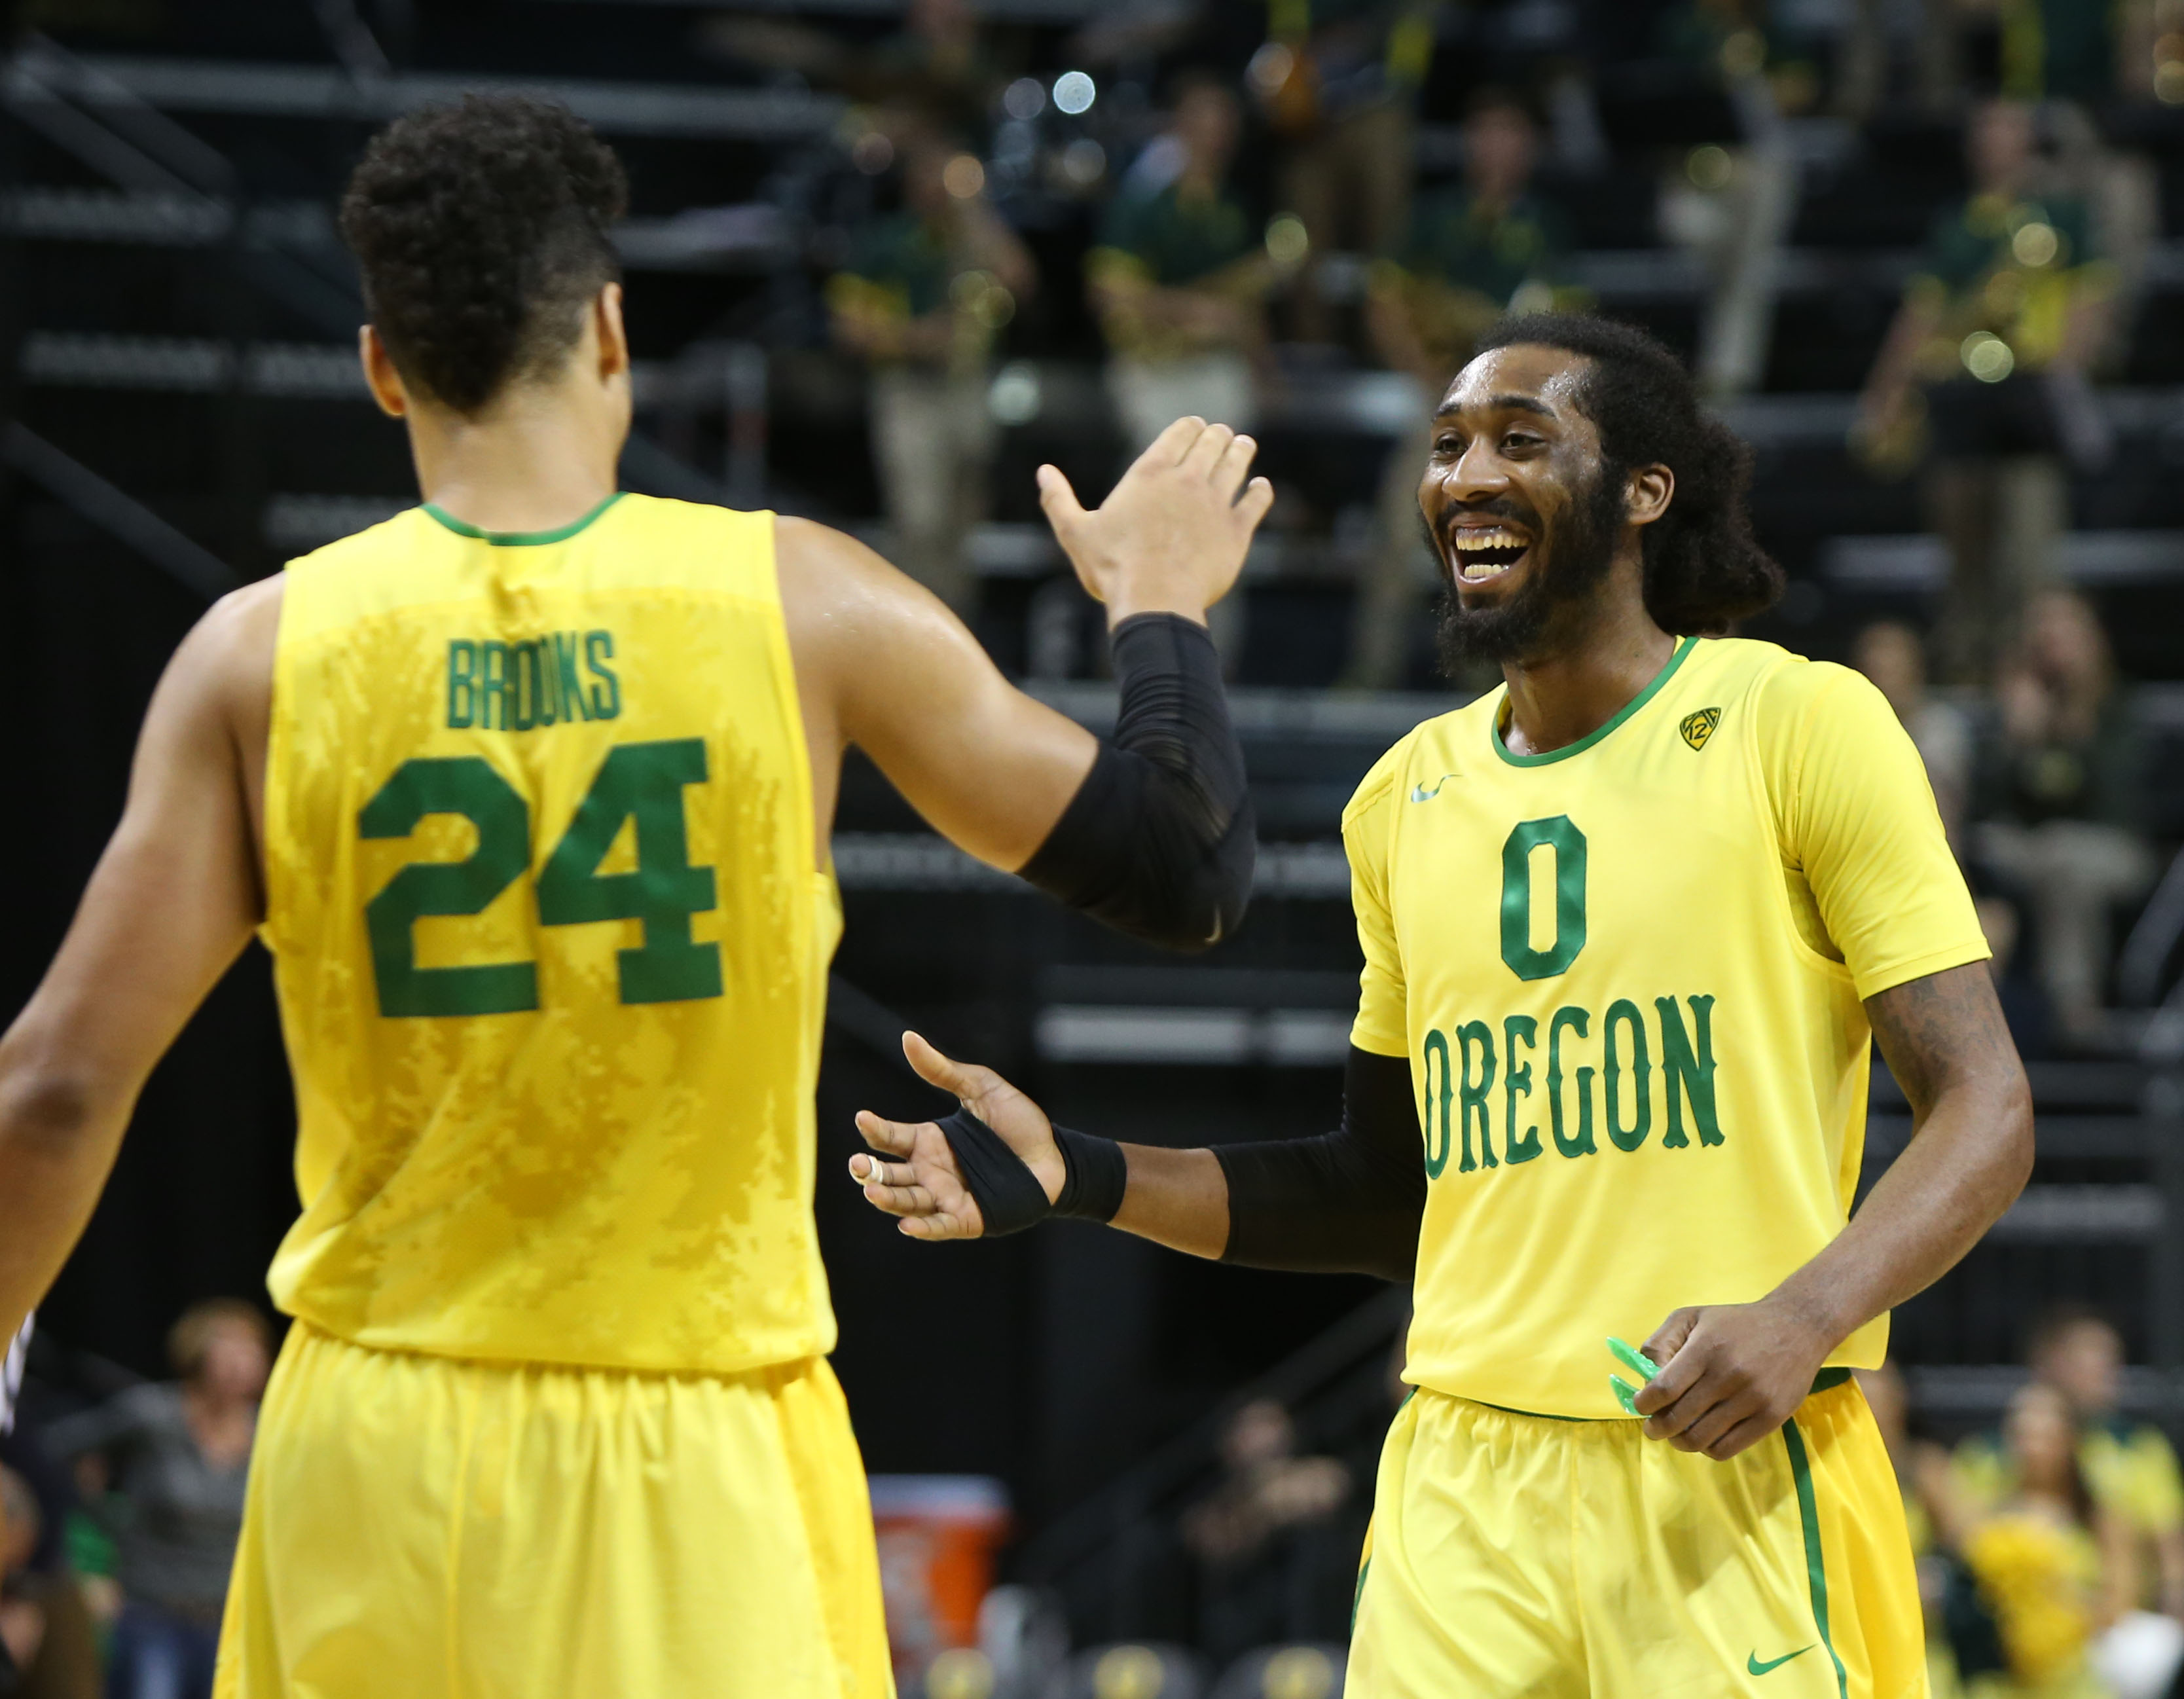 Oregon's Dillon Brooks, left, and Dwayne Benjamin, right, celebrate their 78-73 victory over Fresno State in an NCAA college basketball game, Monday, Nov. 30, 2015, in Eugene, Ore. (AP Photo/Chris Pietsch)